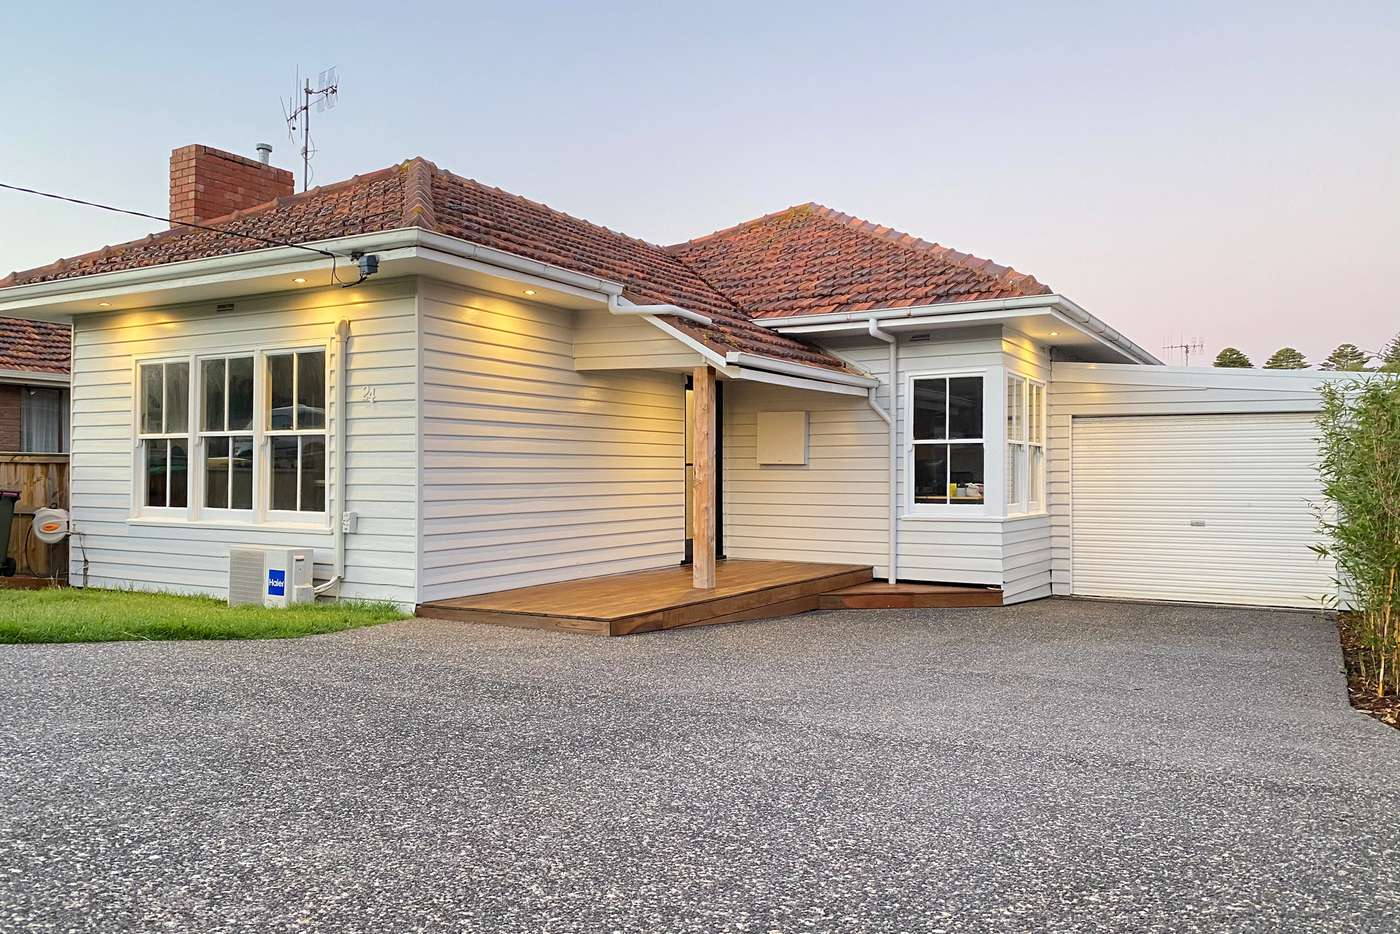 Main view of Homely house listing, 1/24 Barkly Street, Warrnambool VIC 3280